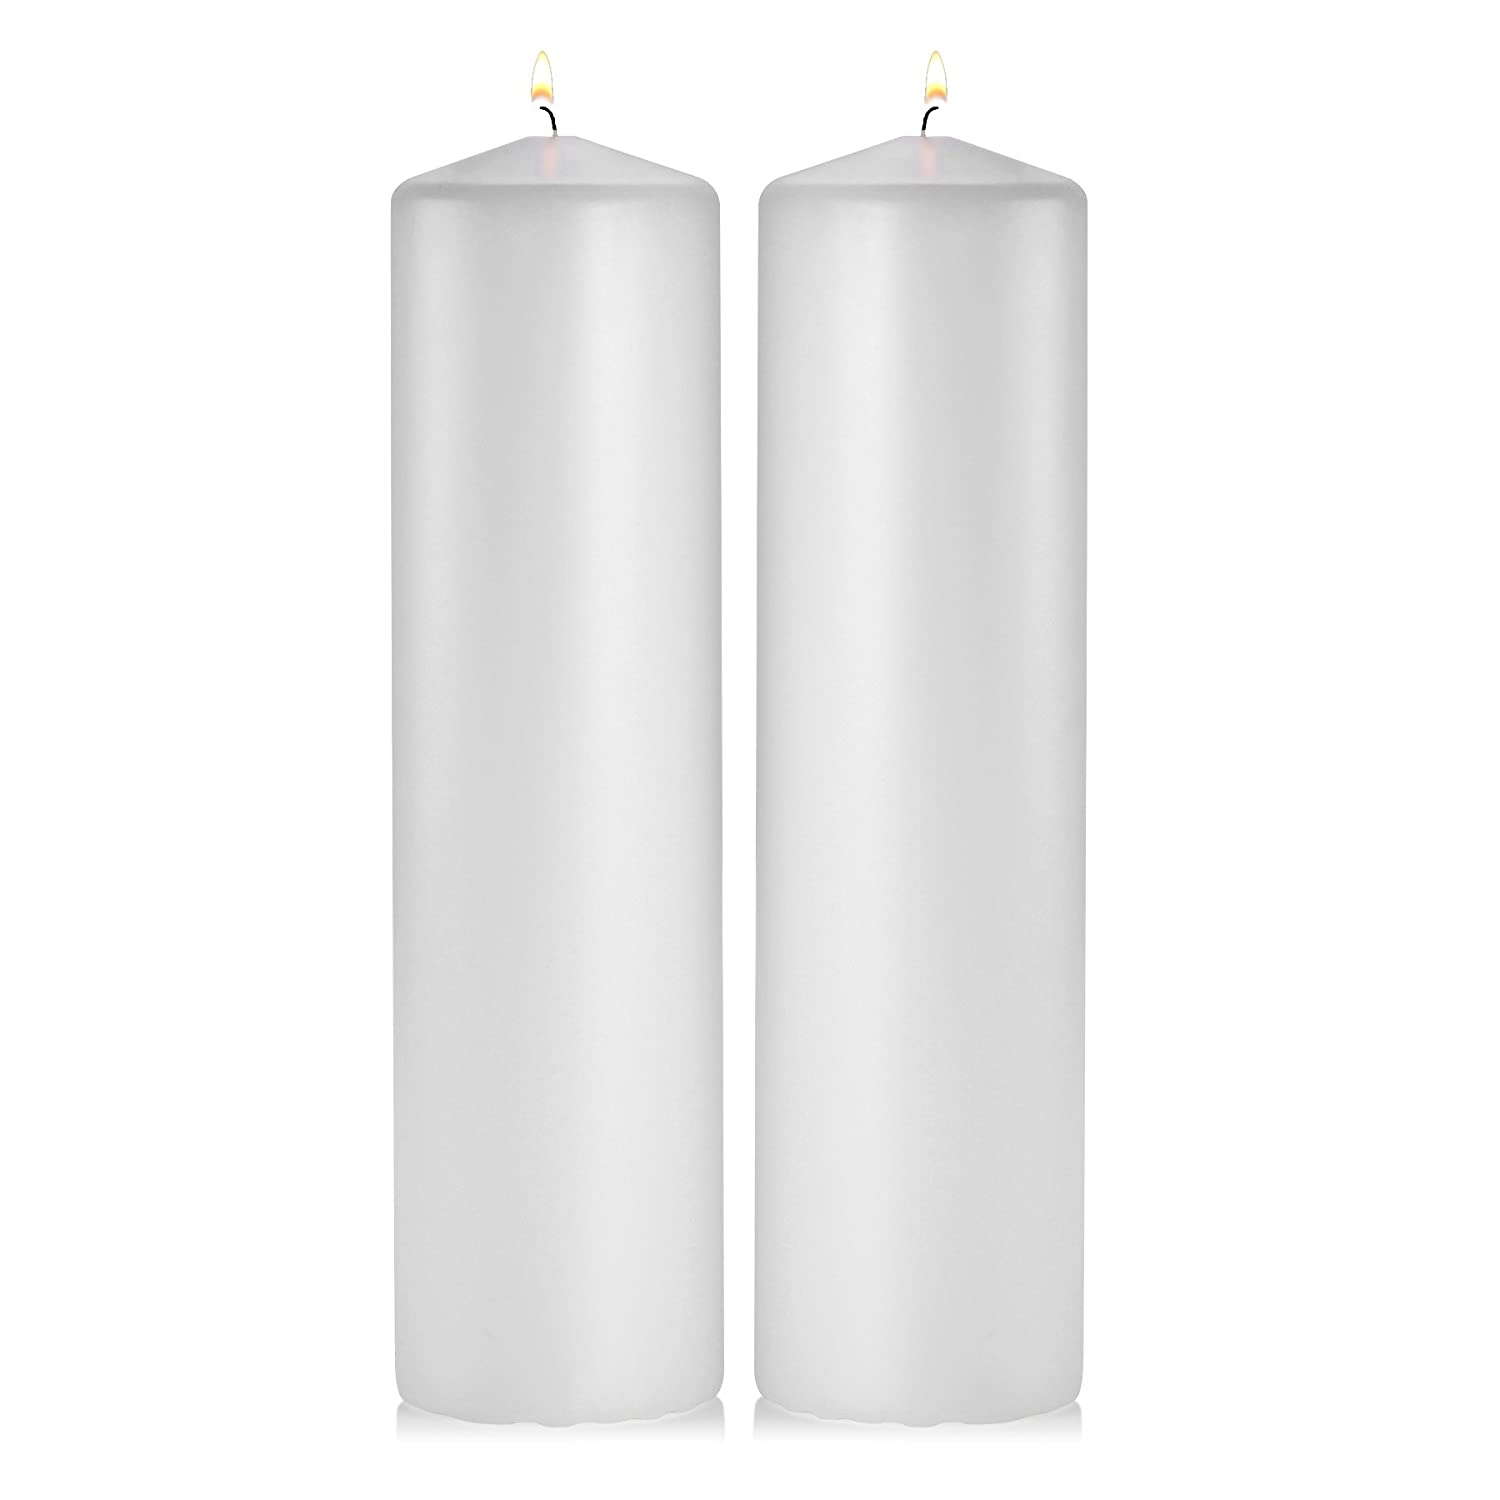 Light In the Dark Ivory Pillar Candles - Set of 2 Unscented Pillar – 3x12 inches for Wedding Centerpiece candle, Home Decor and Holiday Celebrations